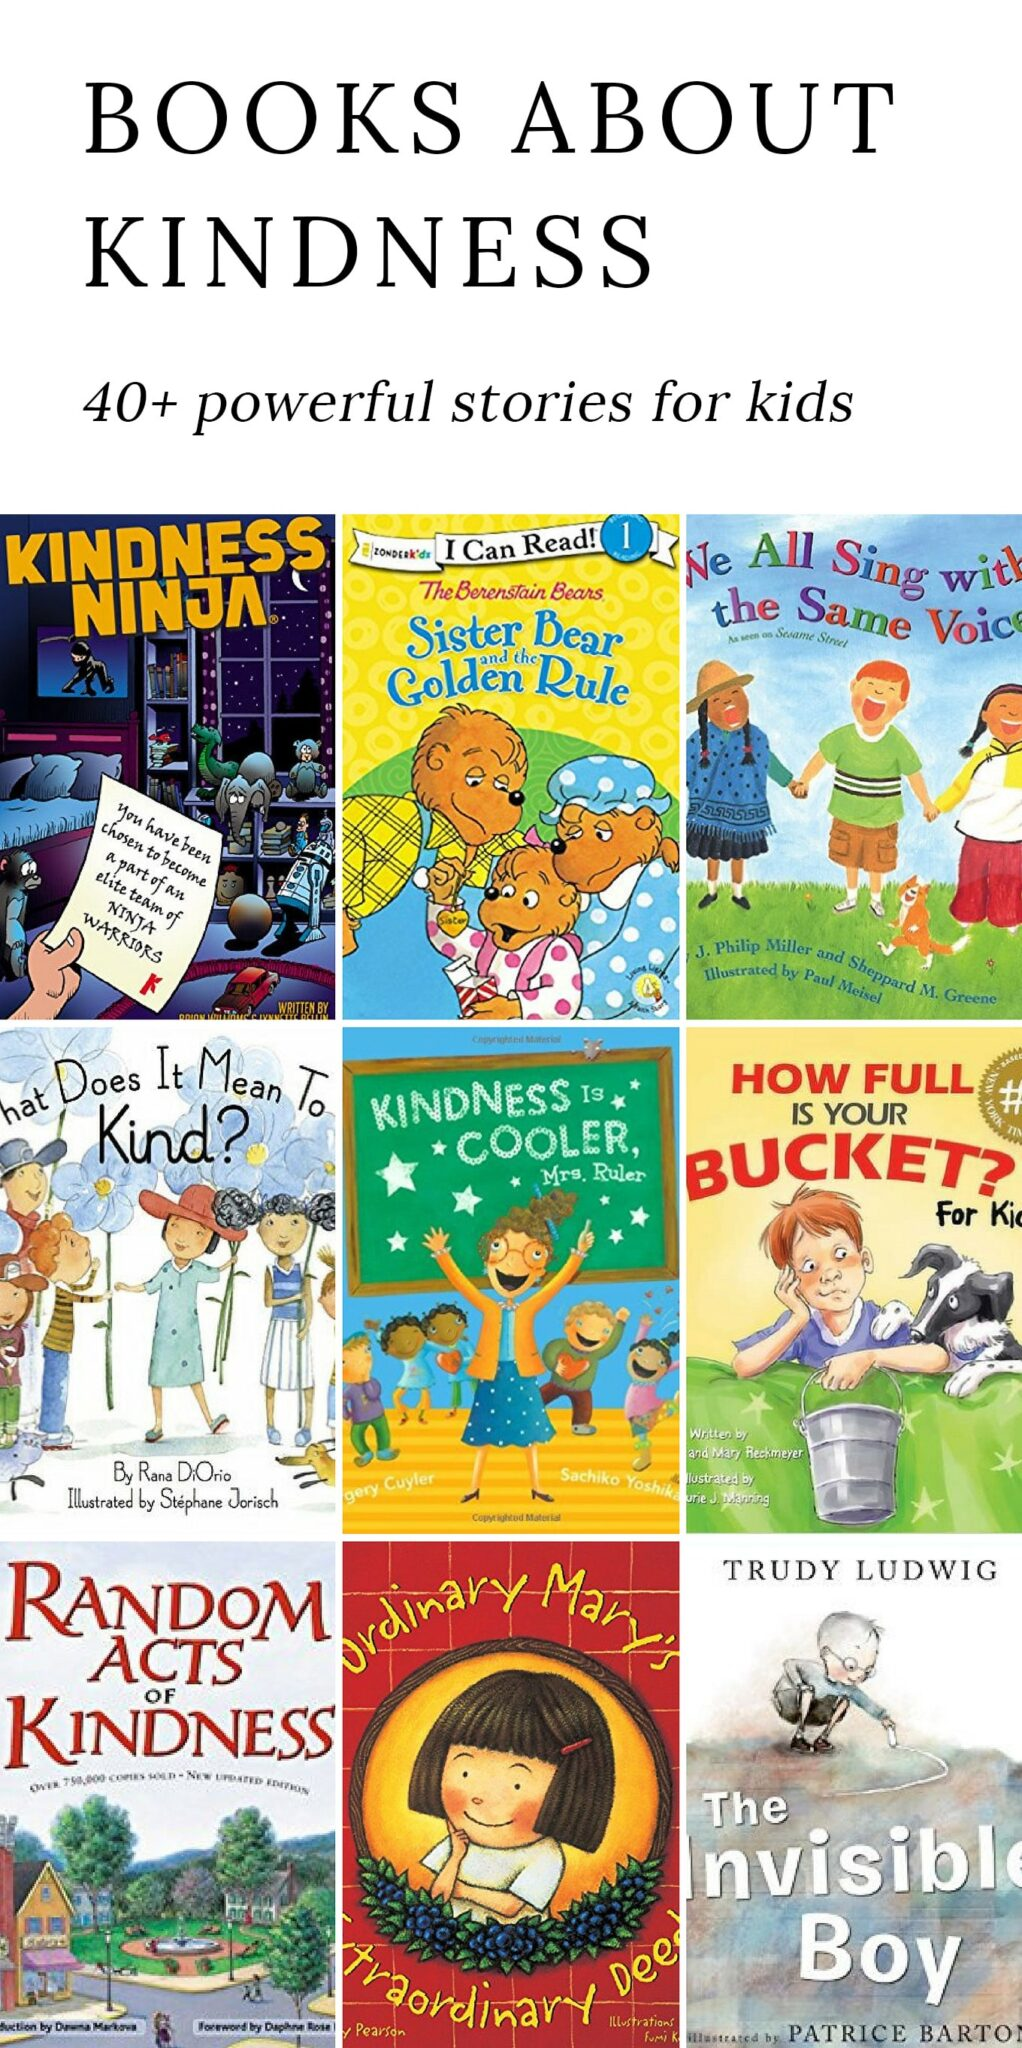 Discover 40+ powerful books for kids that encourage kindness, strengthen relationships, and do their part to make the world a happier place.